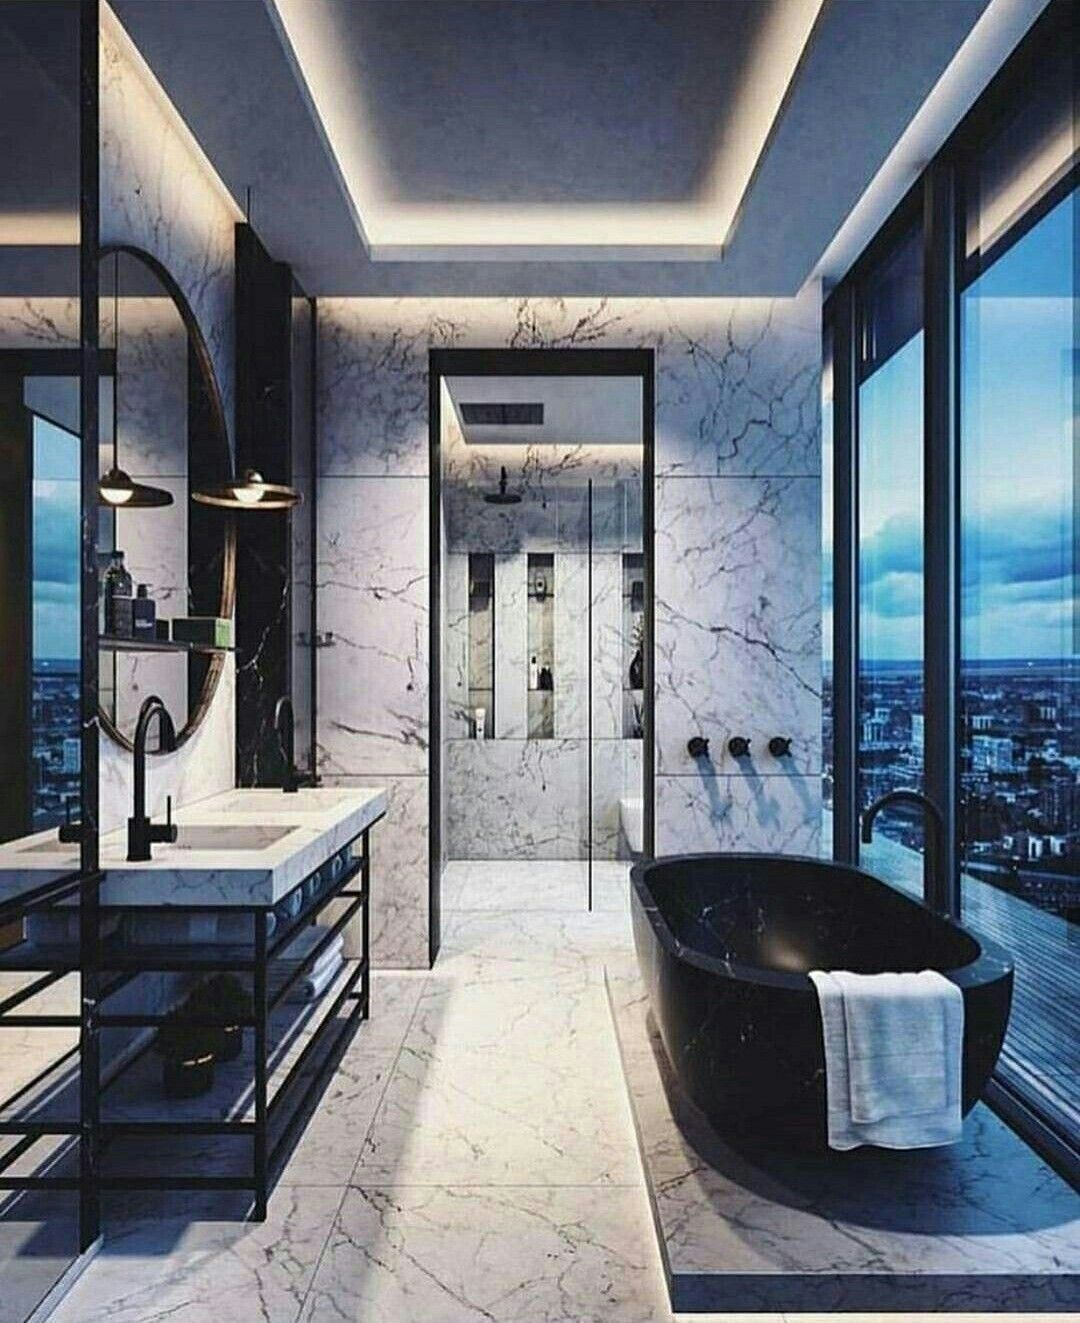 Bathroom that  wanted to share with you all by located unknown tag your friends credits correspond photographer designer owner creator also vitaly dobrov vitalydobrov on pinterest rh